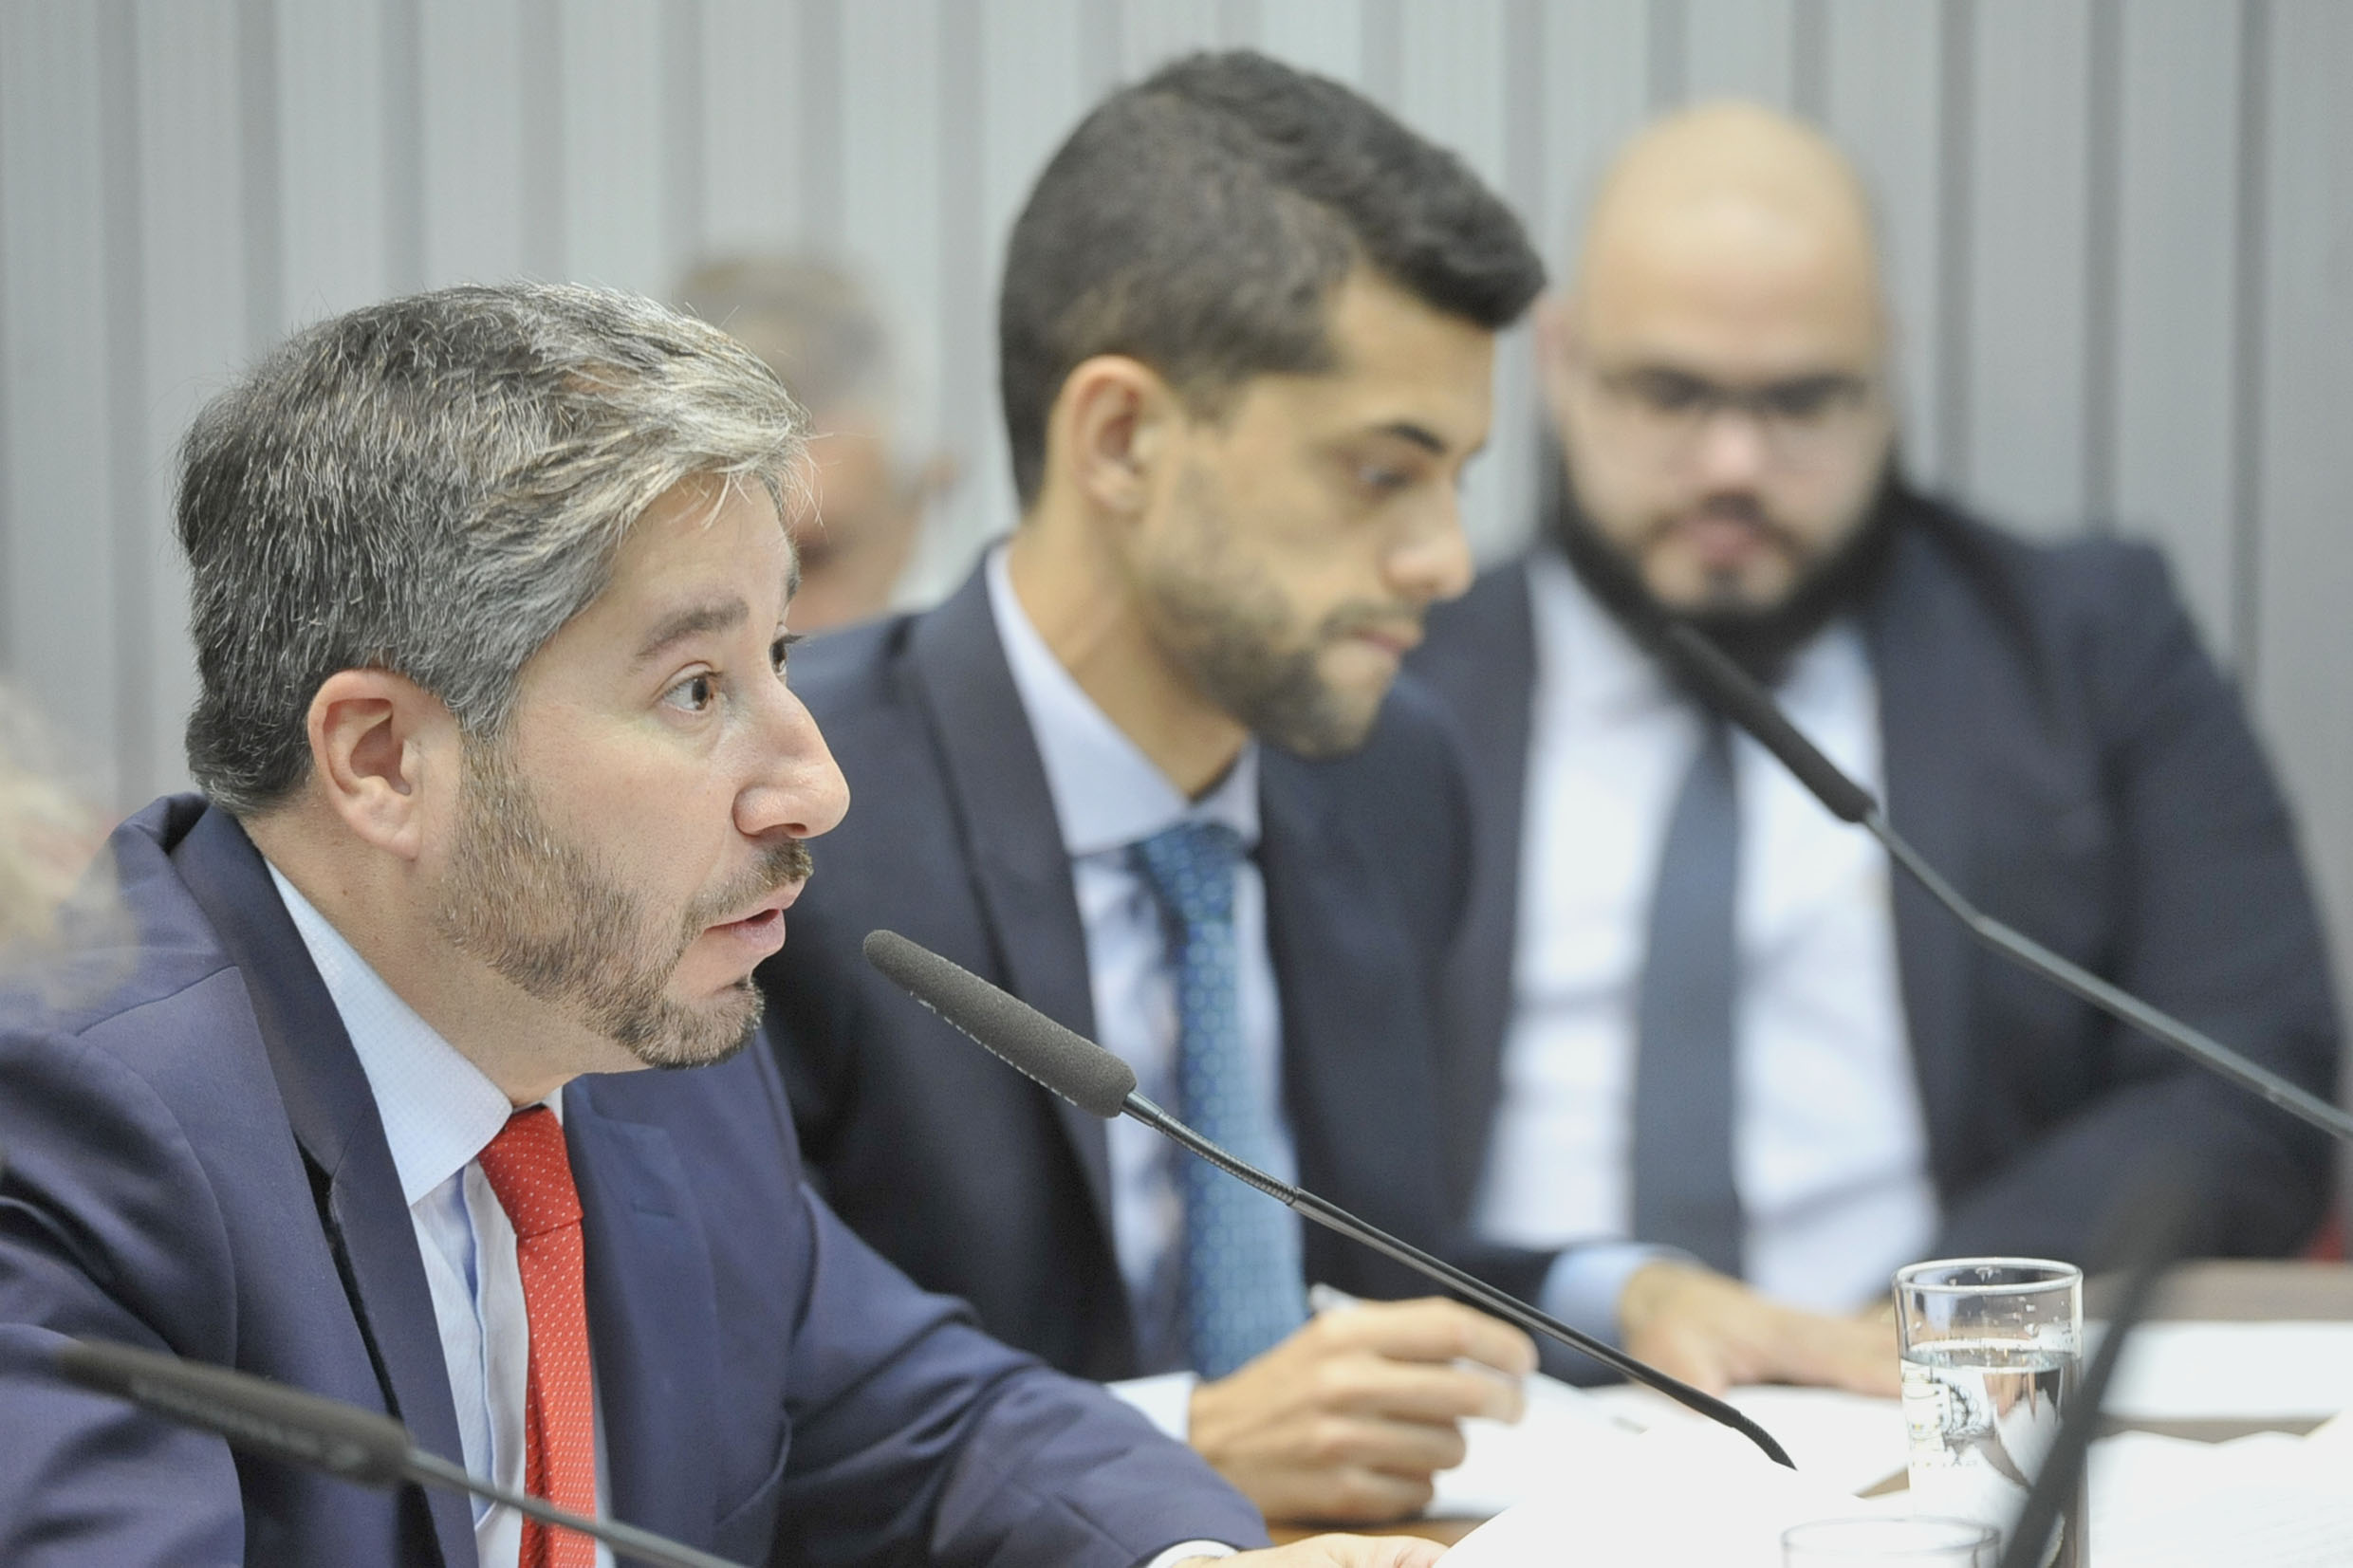 Parlamentares na comissão<a style='float:right' href='https://www3.al.sp.gov.br/repositorio/noticia/N-05-2019/fg234442.jpg' target=_blank><img src='/_img/material-file-download-white.png' width='14px' alt='Clique para baixar a imagem'></a>